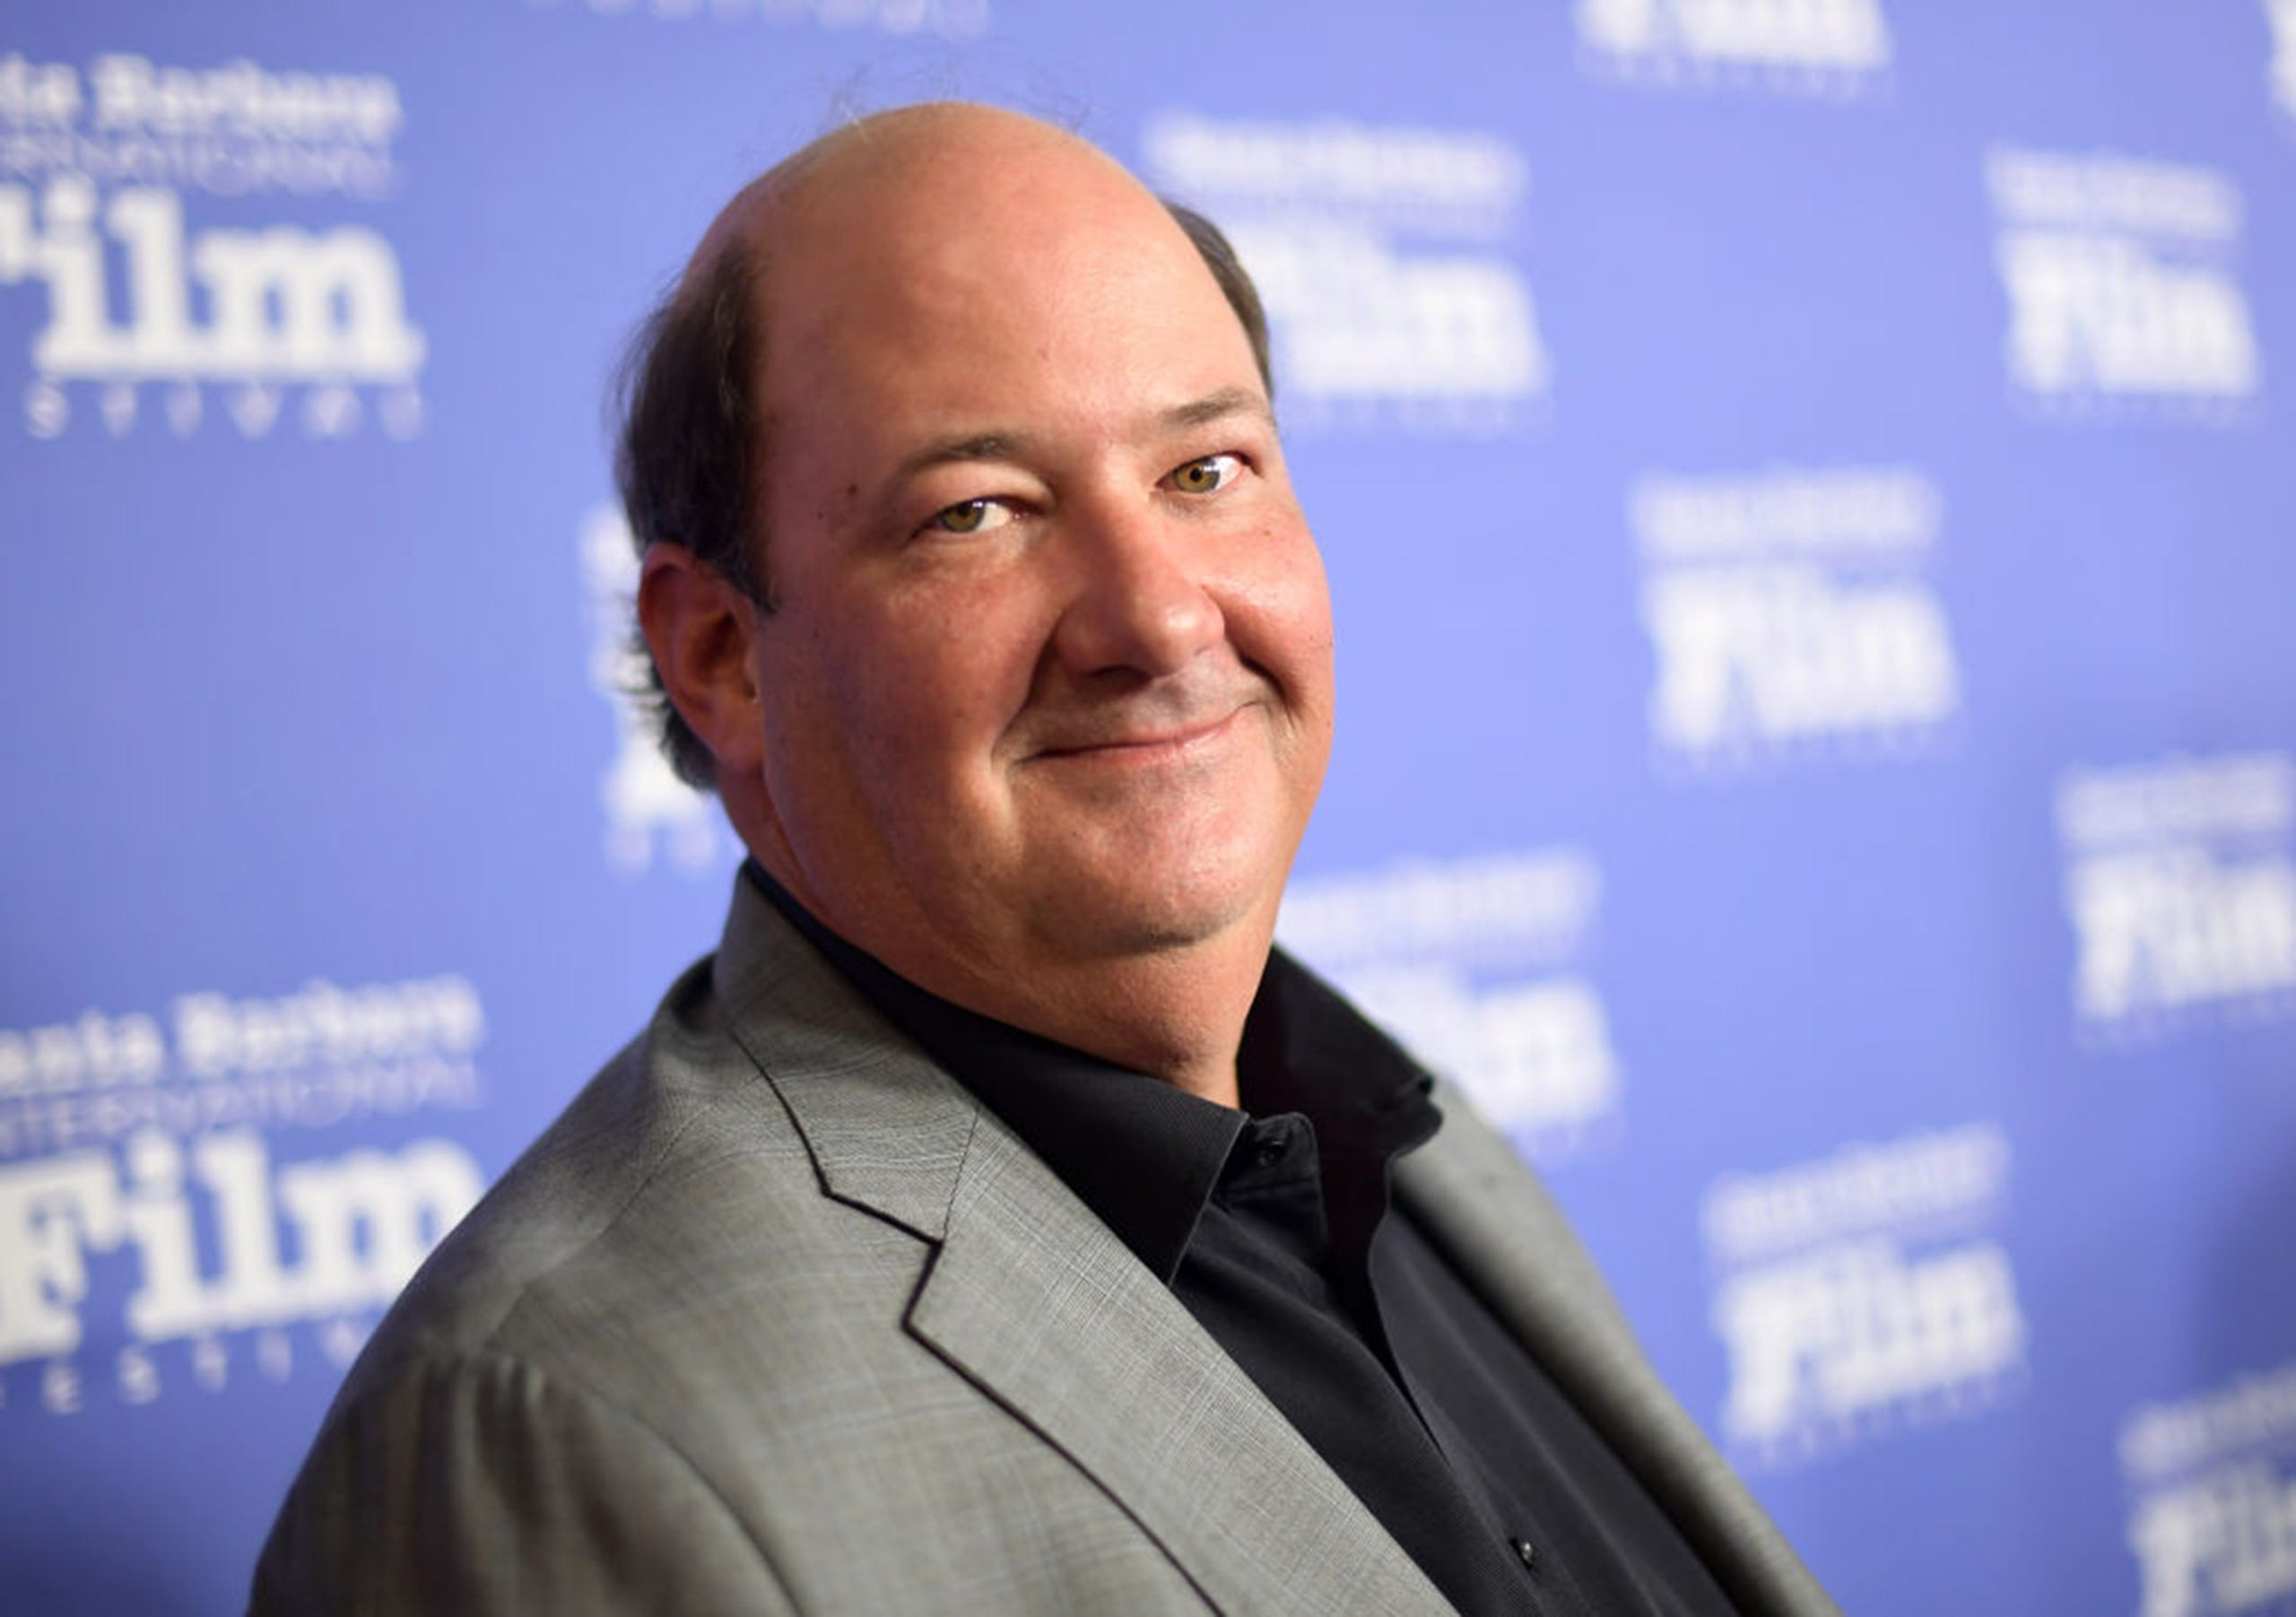 My Worst Moment The Office Star Brian Baumgartner Talks About An Absurd Audition